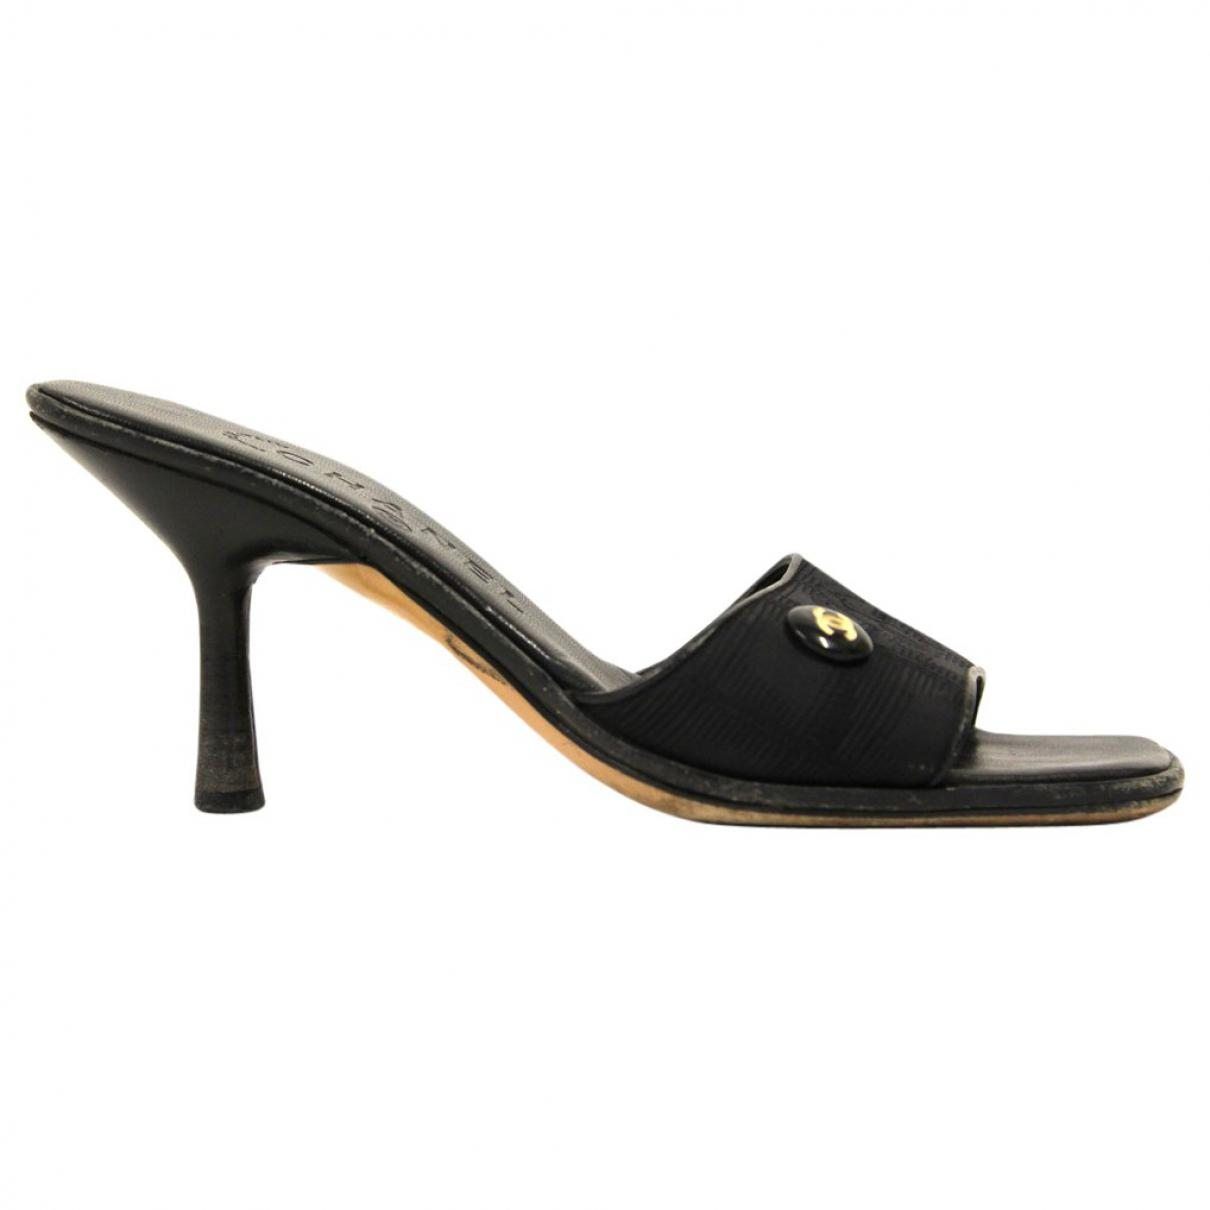 Pre-owned - Cloth heels Chanel oEAnP7VV